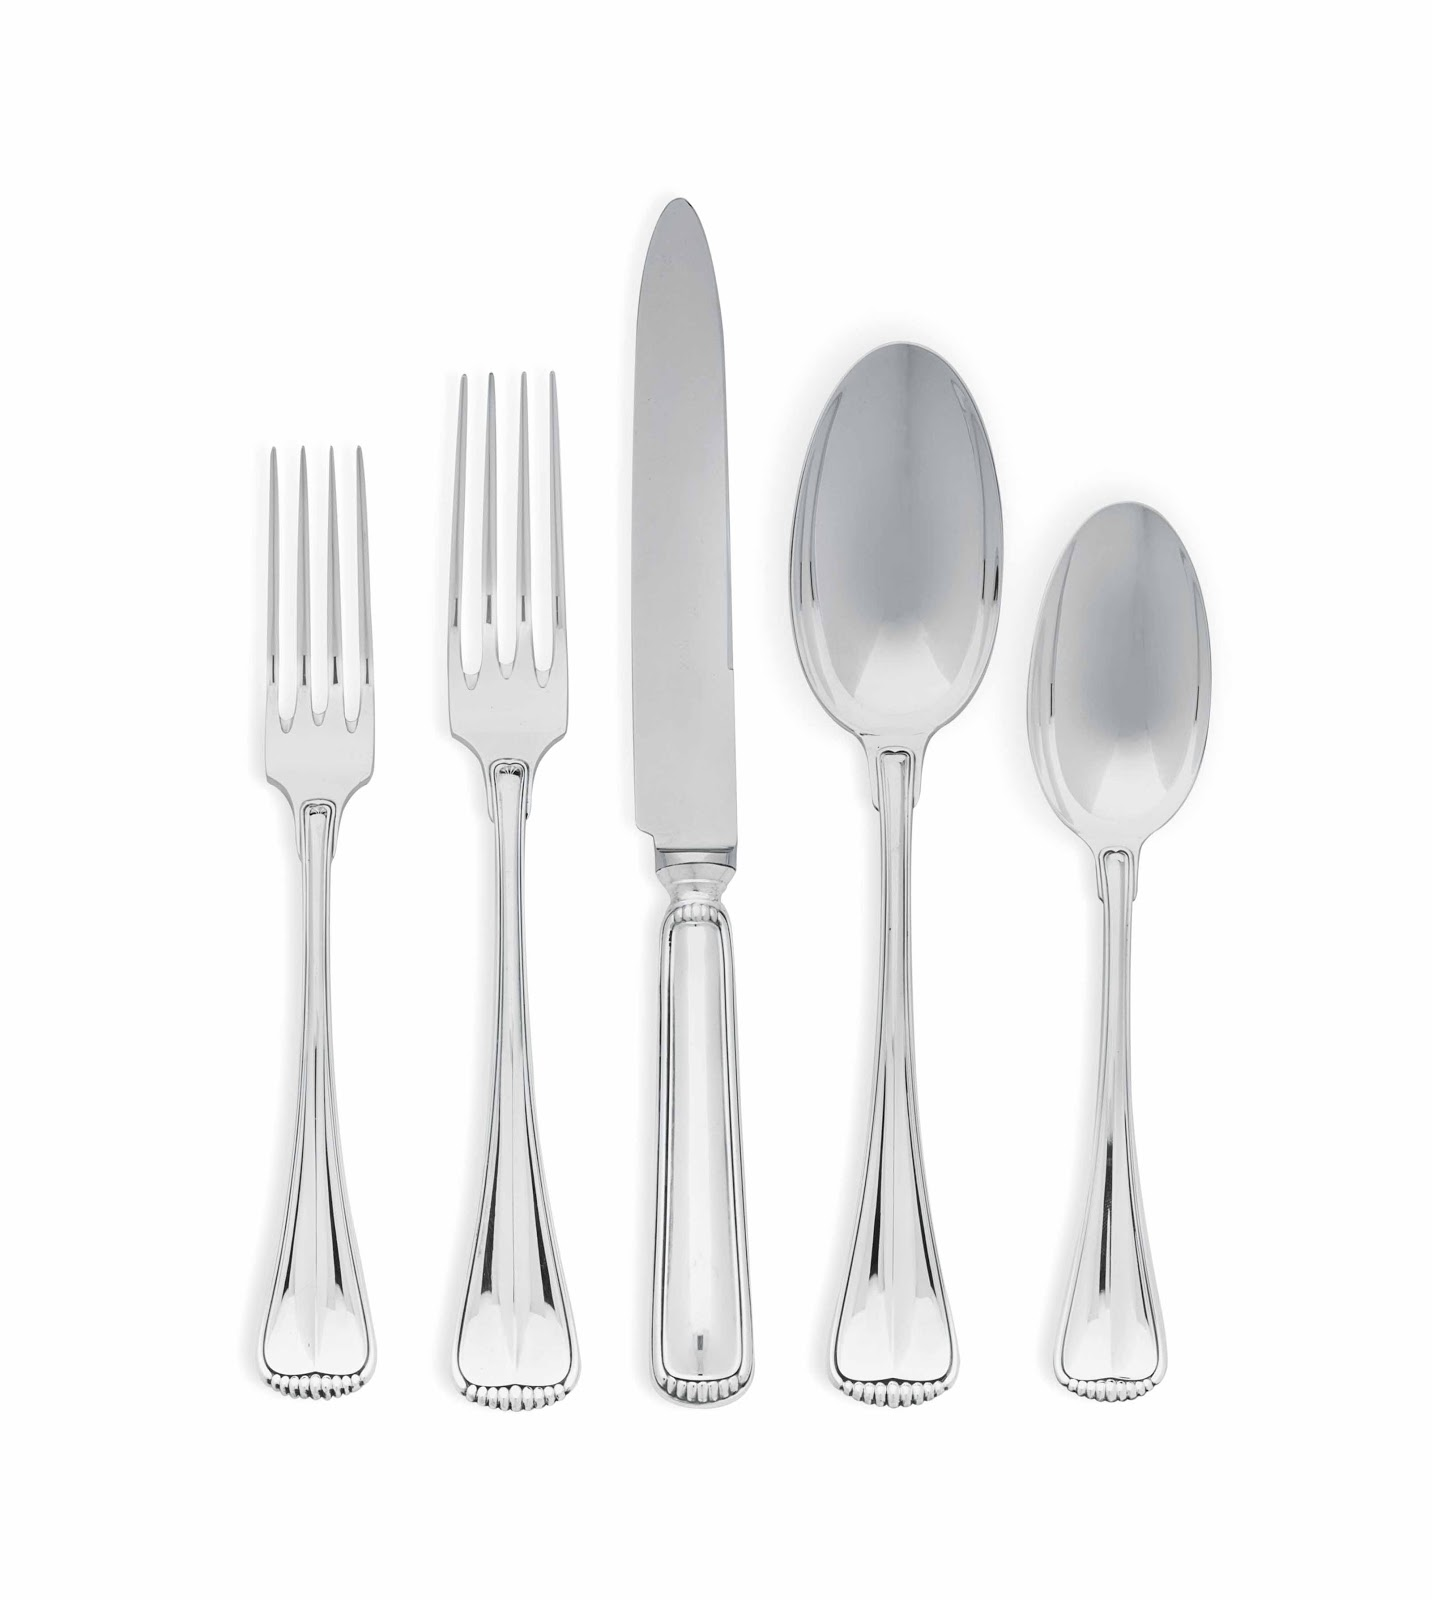 Polish your eating utensils to sparkle like this image.